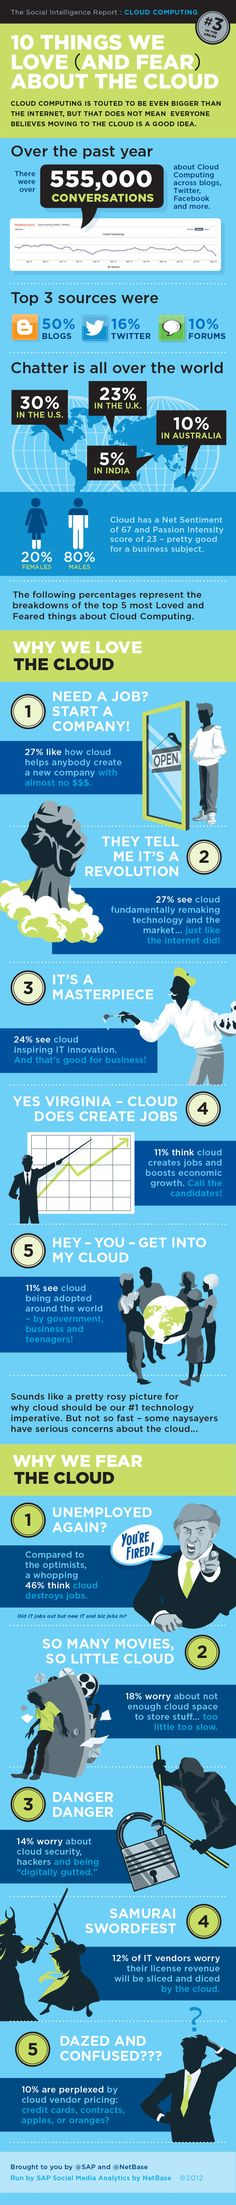 10 things we love (and fear) about the cloud #cloudcomputing